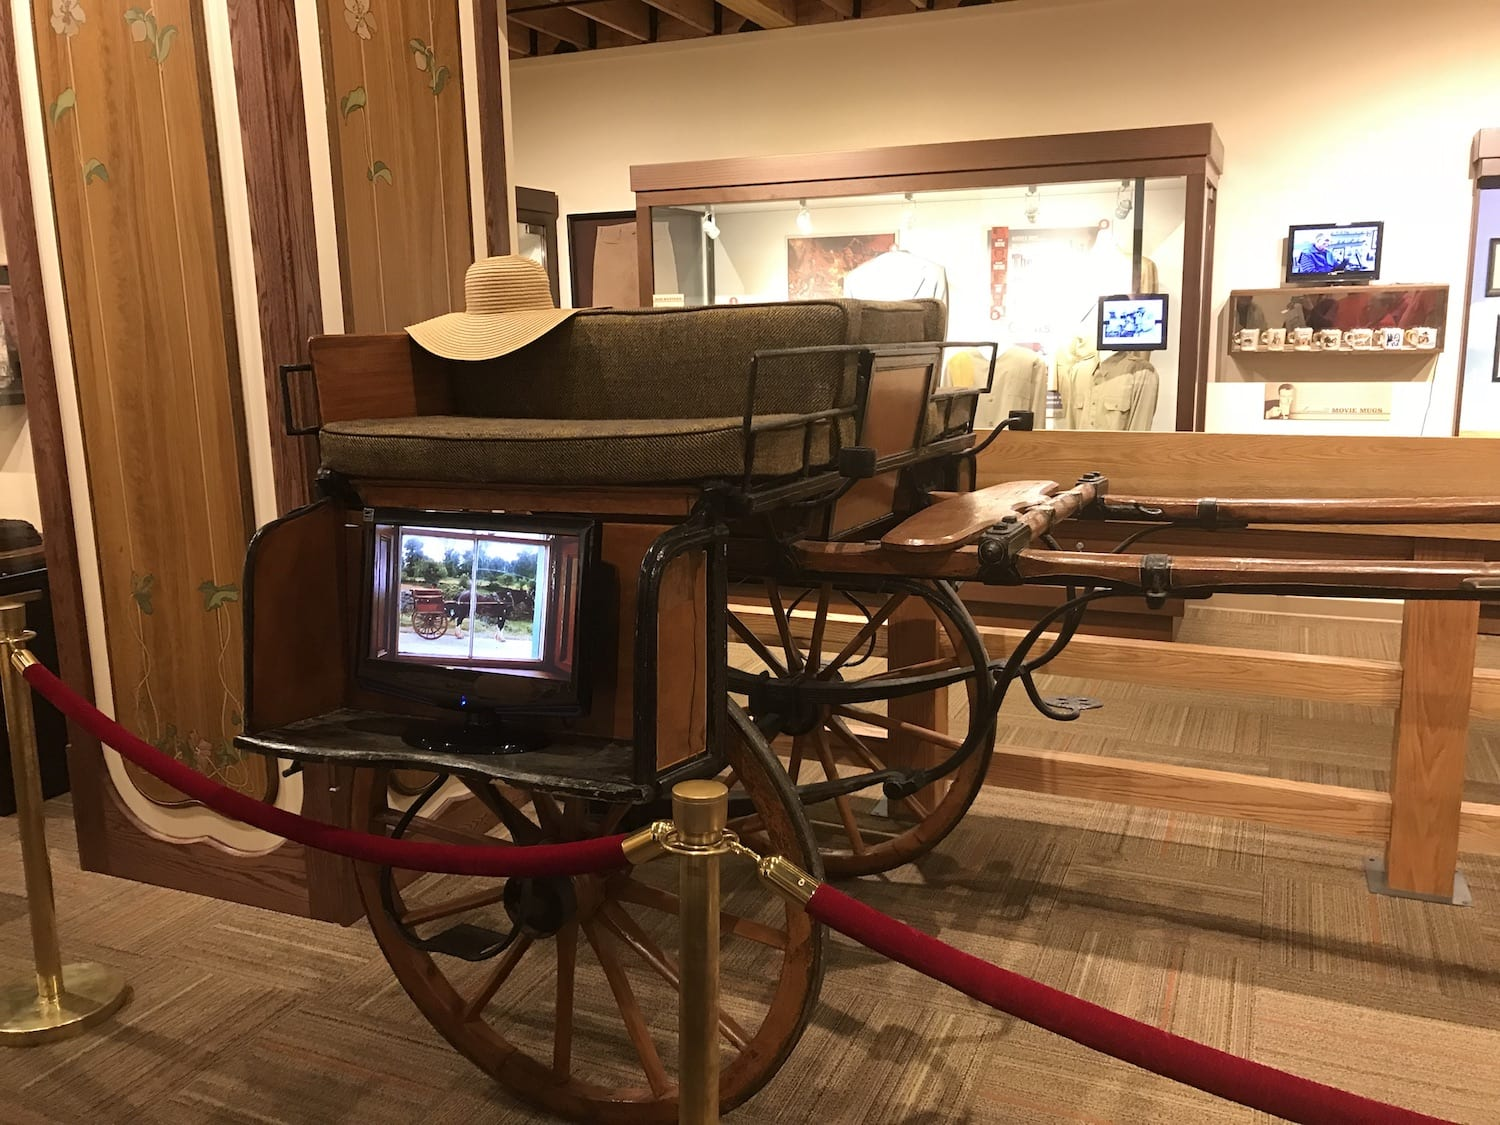 Wagon from The Quiet Man - John Wayne Birthplace Museum Winterset Iowa